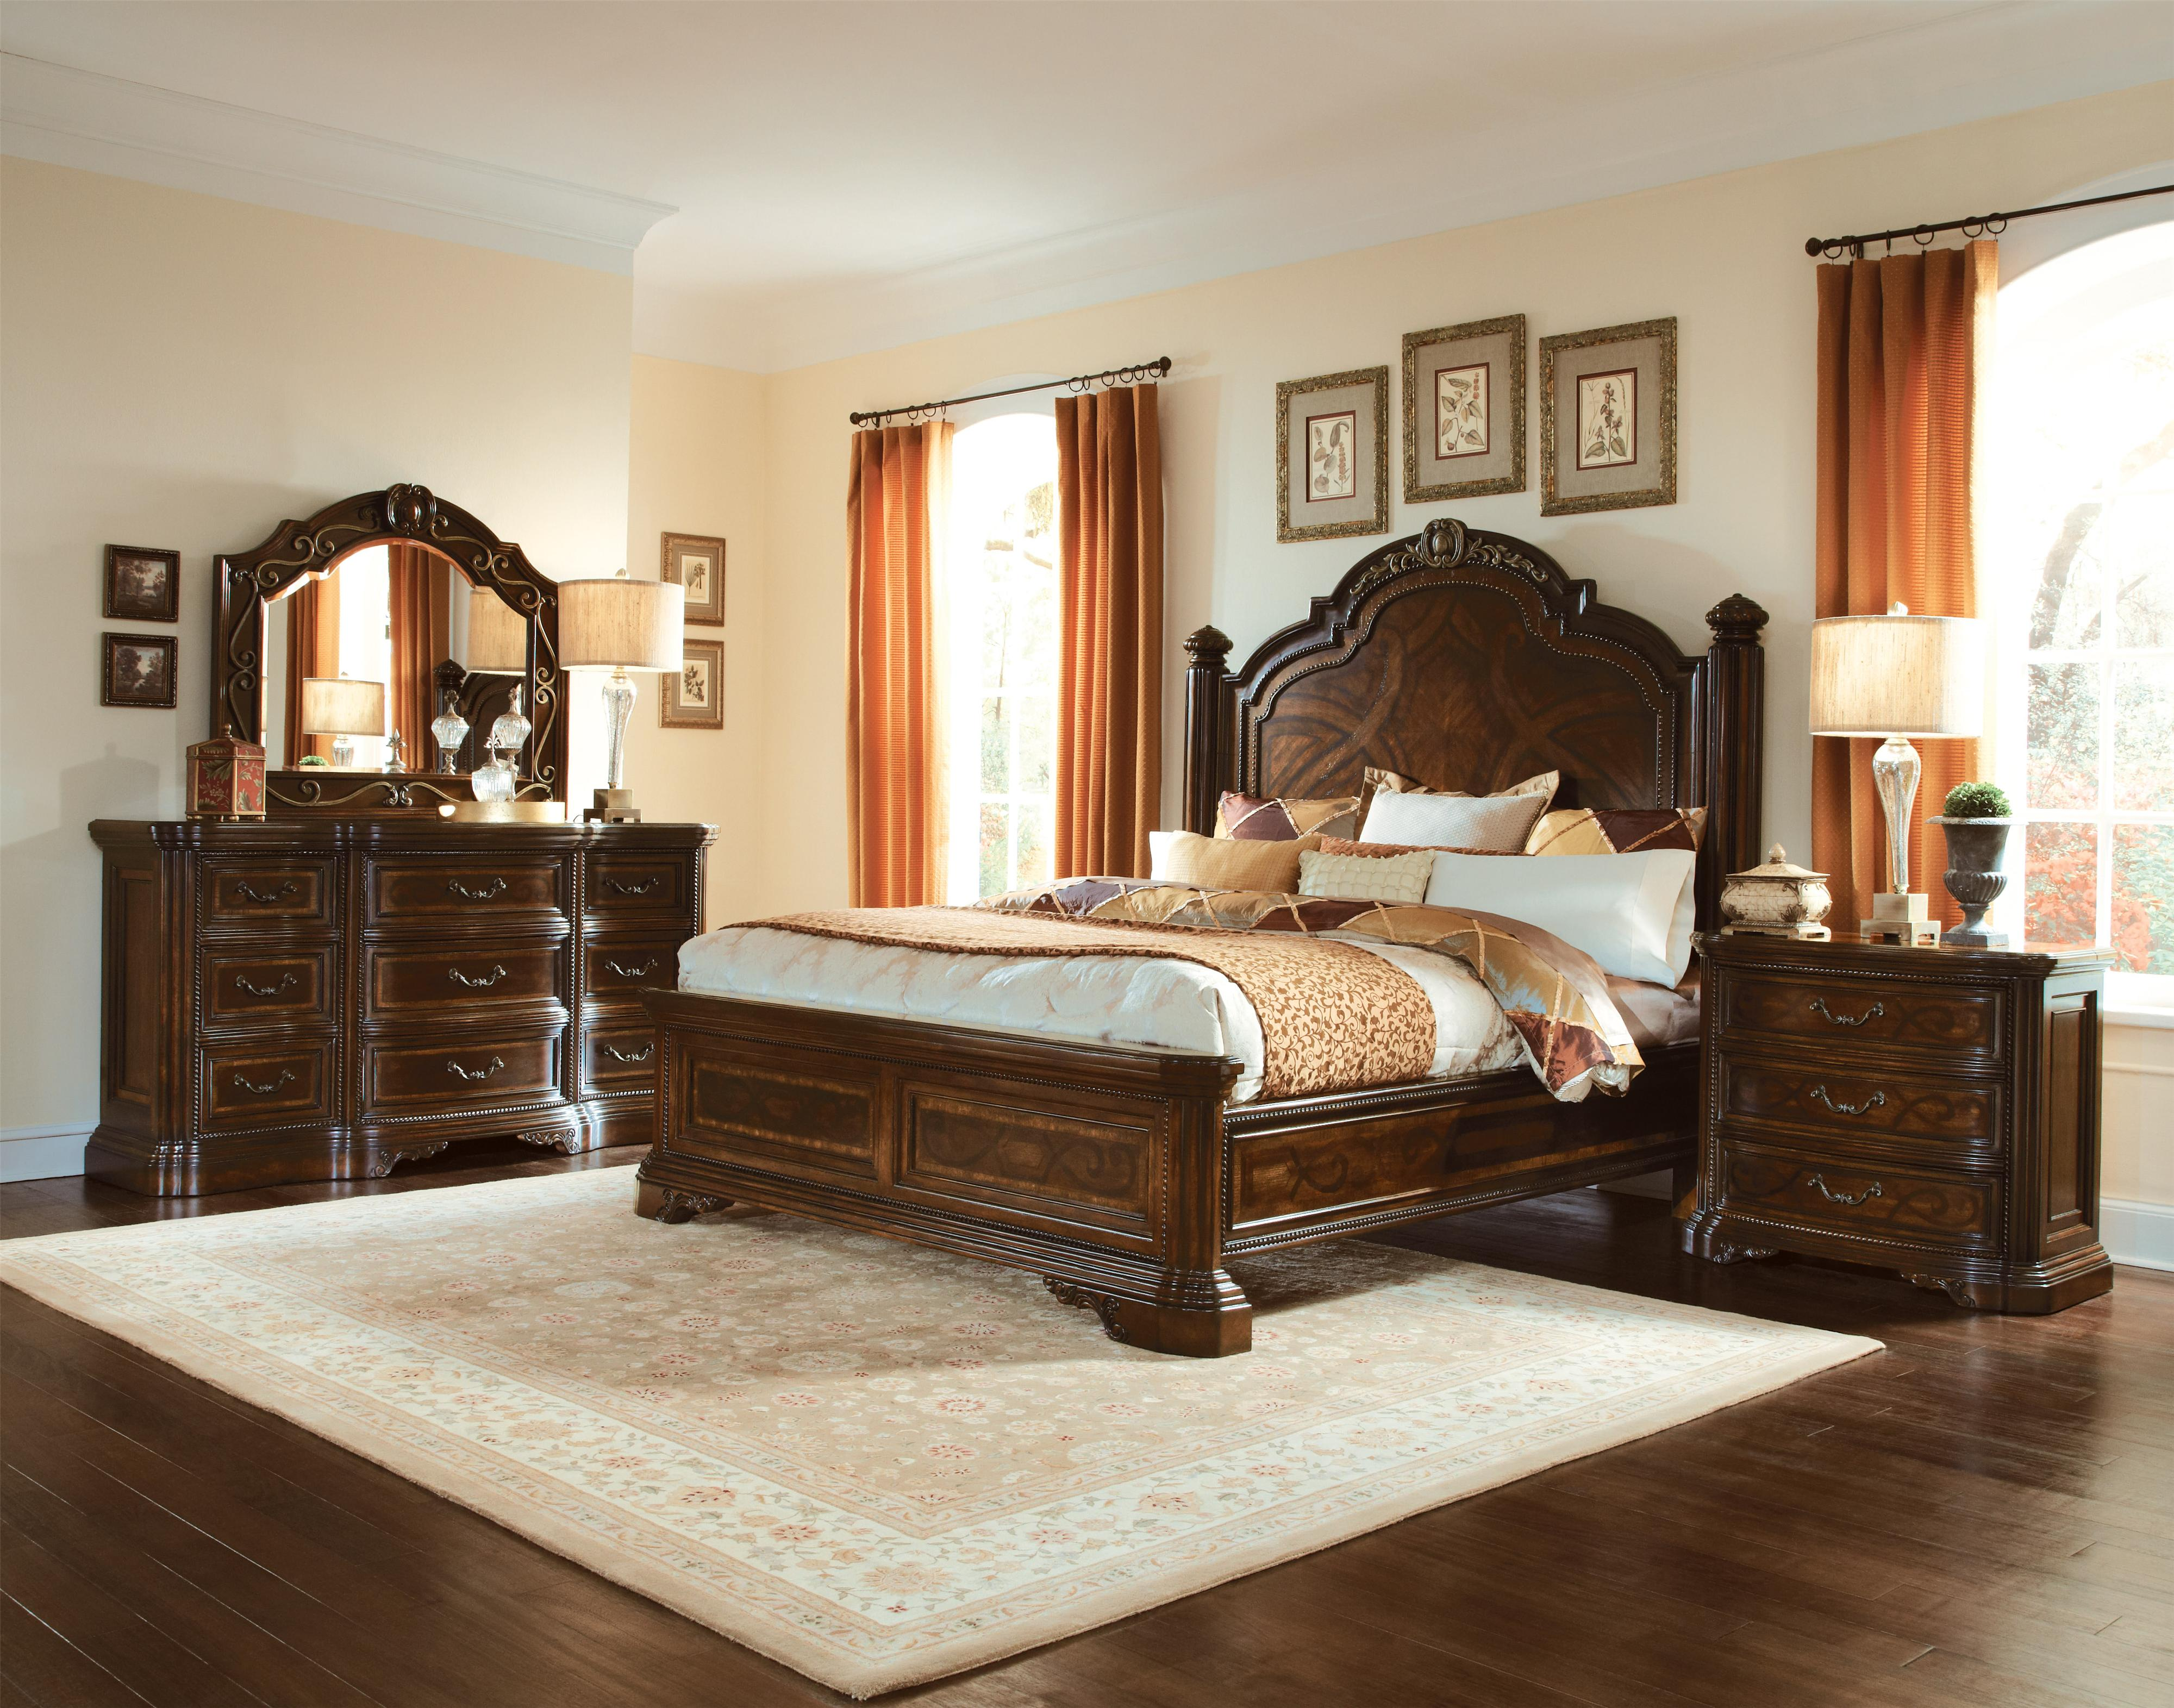 Exceptionnel A.R.T. Furniture Inc Valencia Queen Leather Upholstered Sleigh Bed    Complete Set   Boulevard Home Furnishings   Sleigh Beds